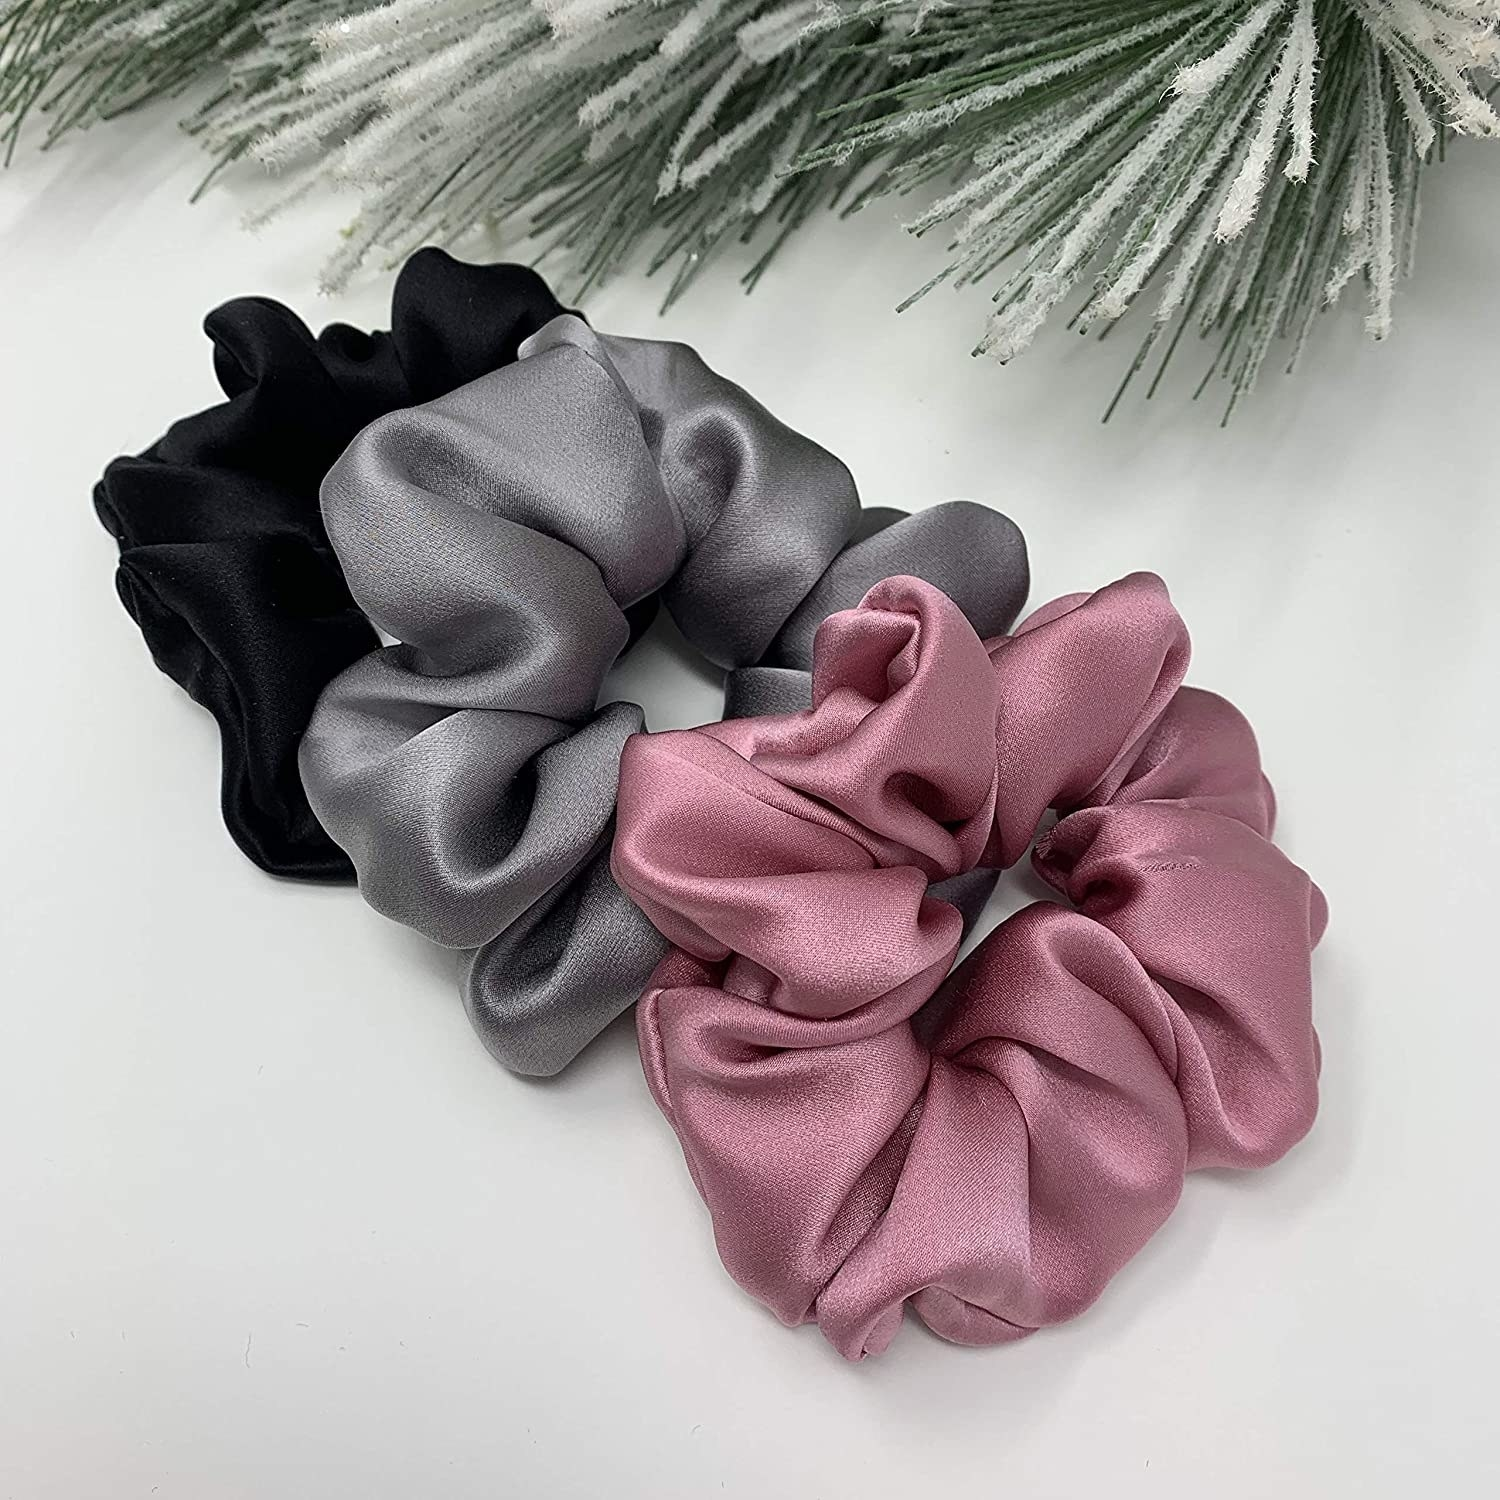 the three scrunchies in different colors